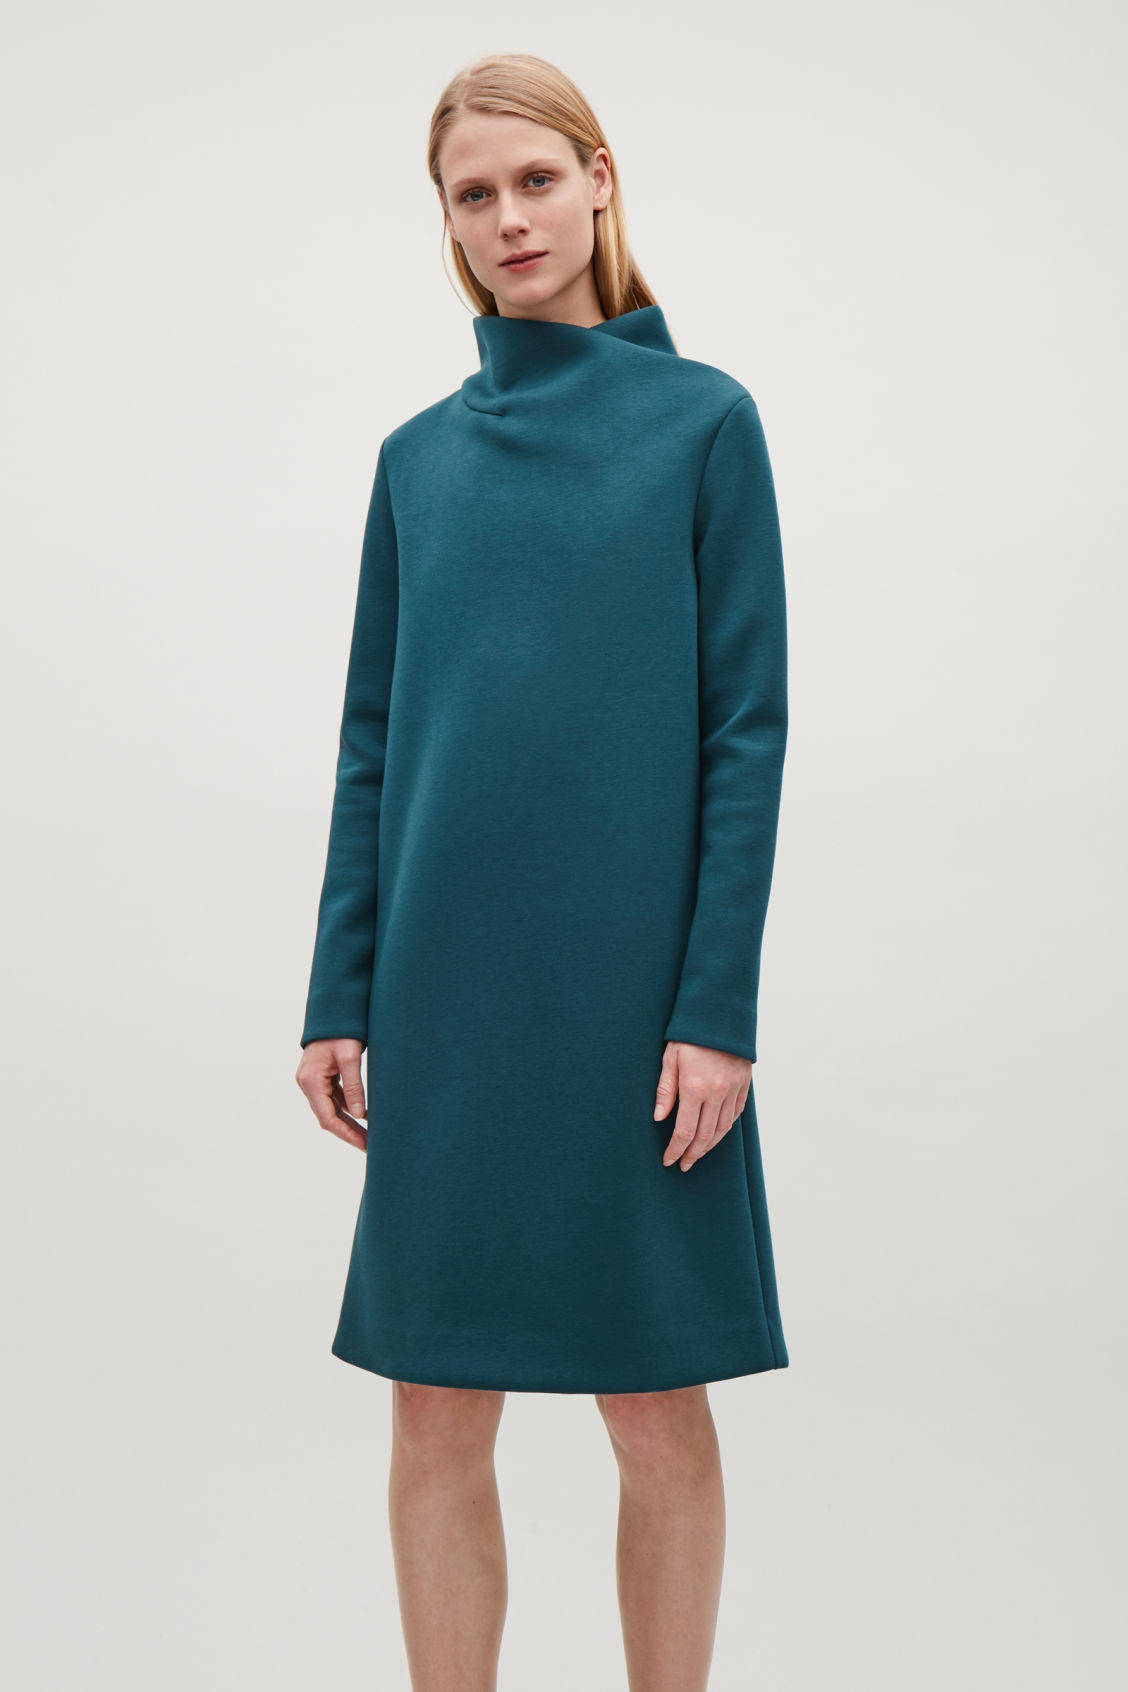 DRESS WITH DRAPED NECK - Teal - Dresses - COS